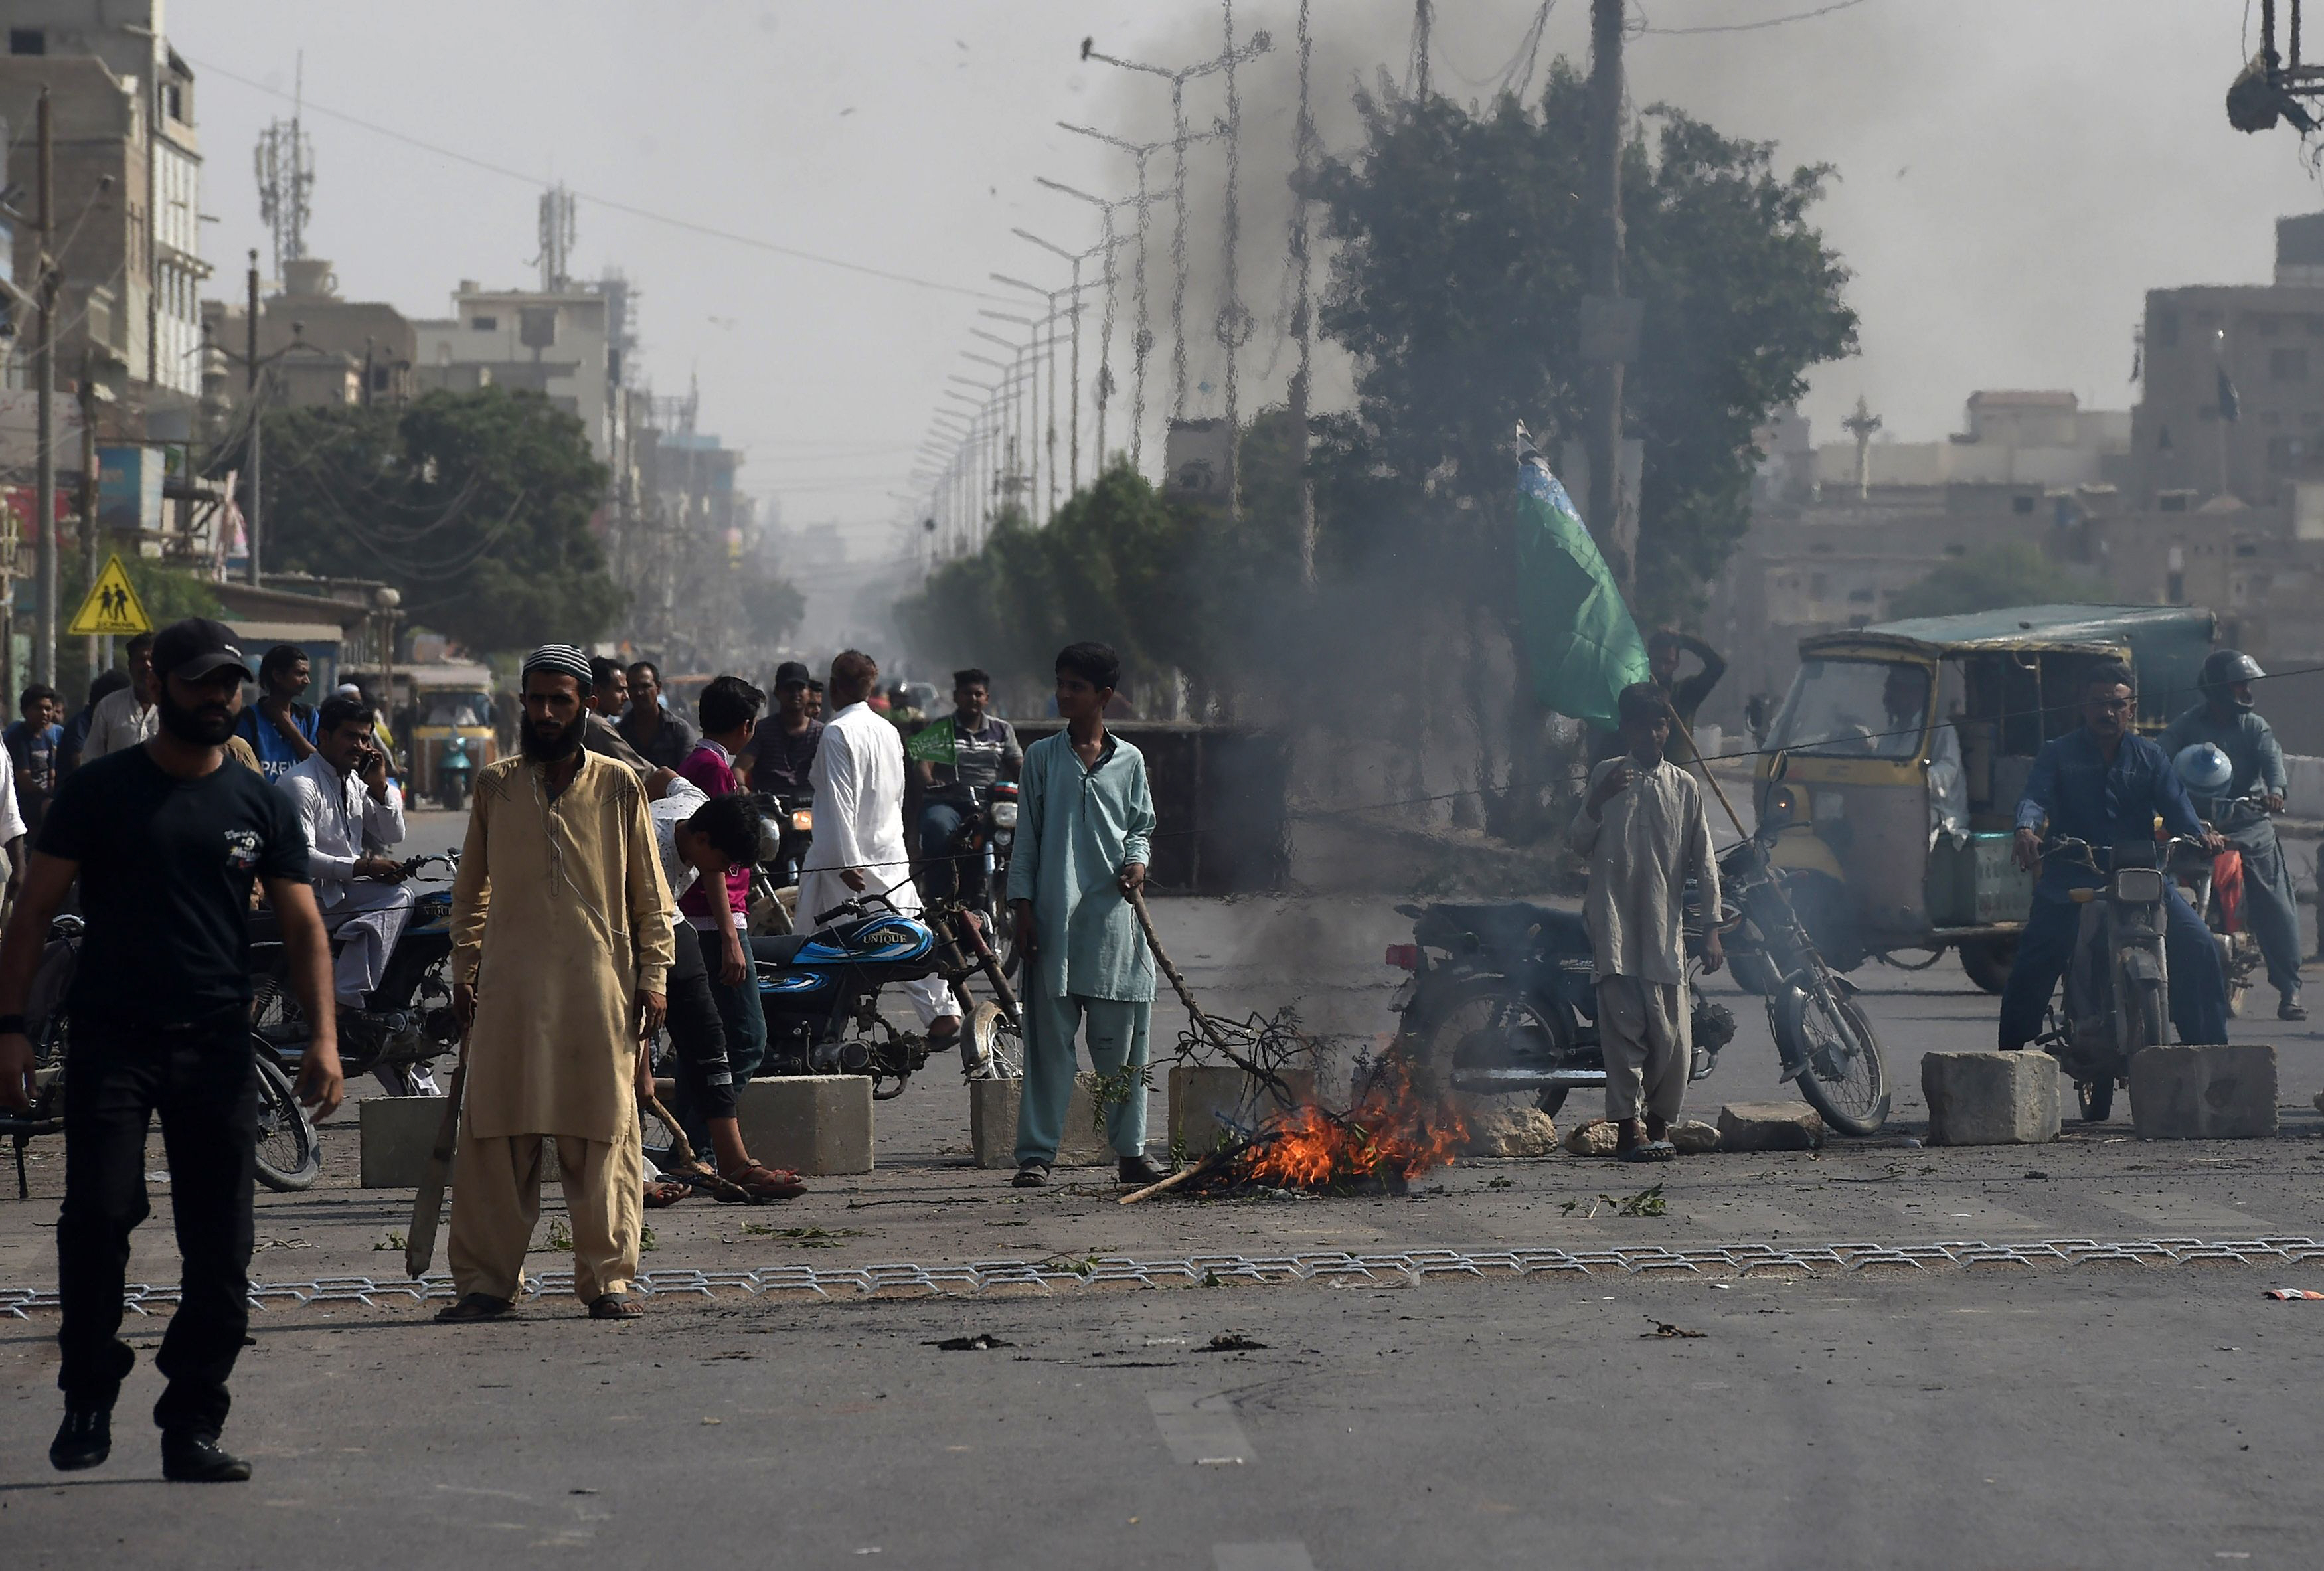 tlp-supporters-on-a-blocked-street-during-protests-photoafp-3